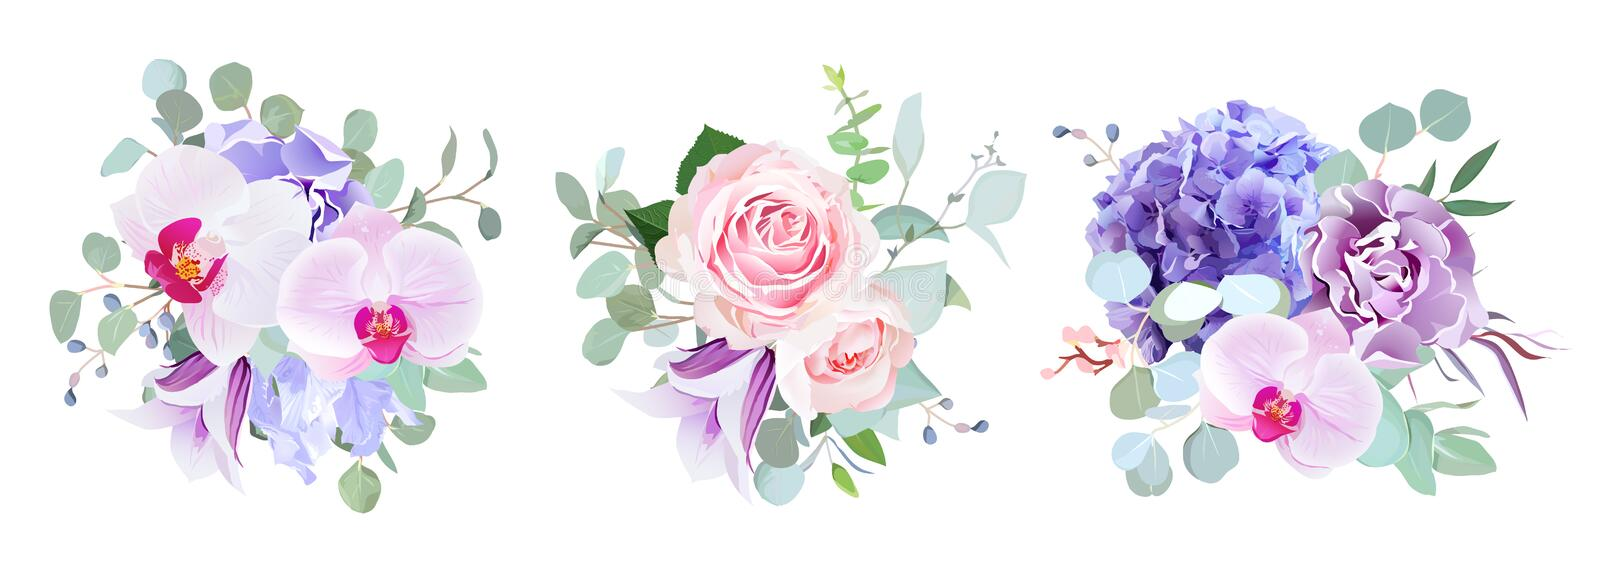 Purple and violet flowers vector design bouquets. Rose, orchid, hydrangea, carnation, bell flower, eucalyptus greenery. Floral wedding borders composition. All vector illustration